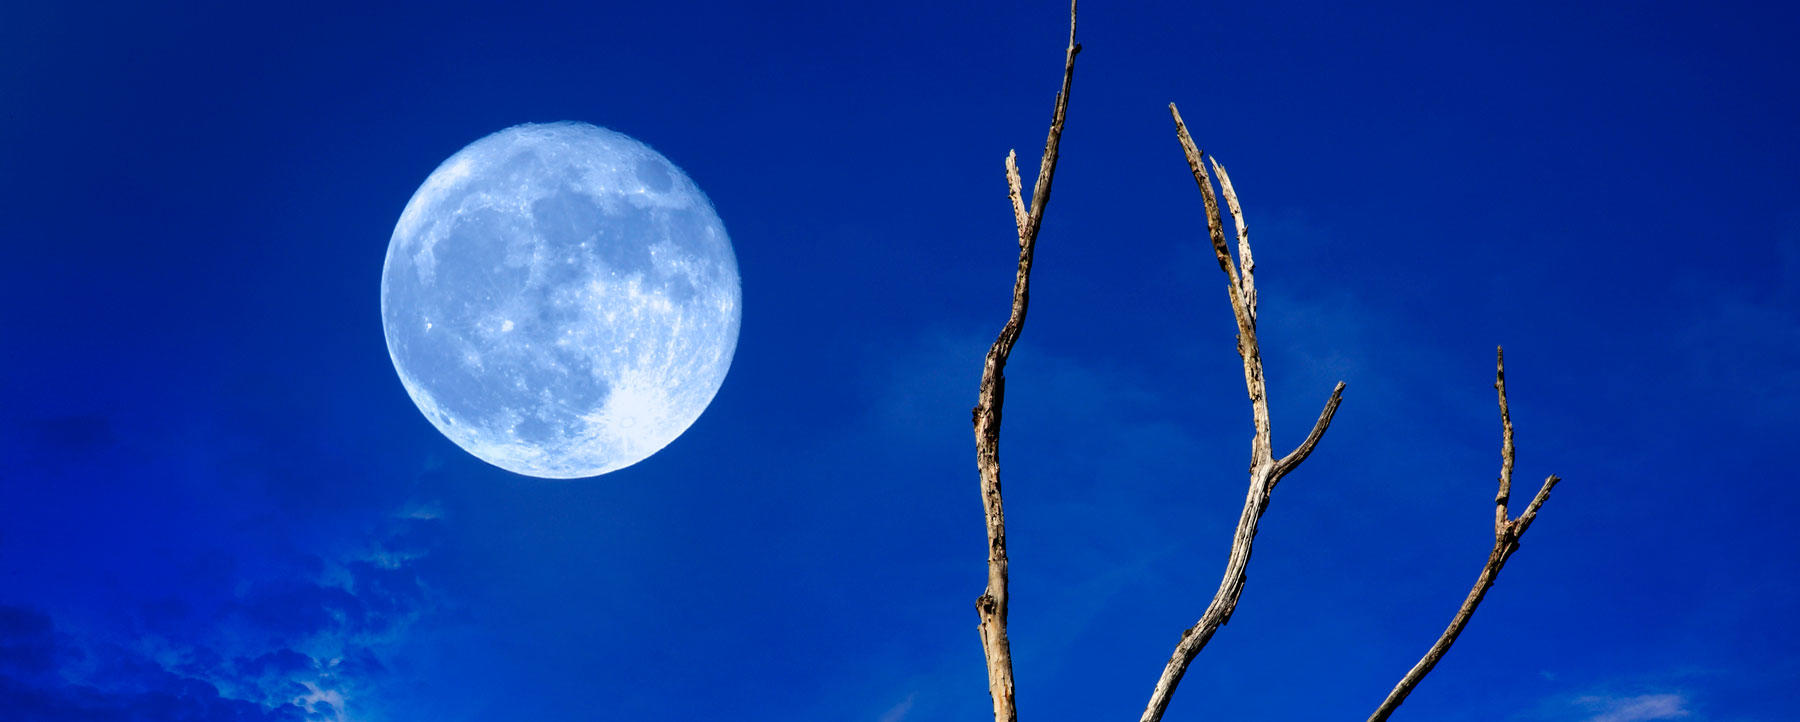 Blue moon and tree